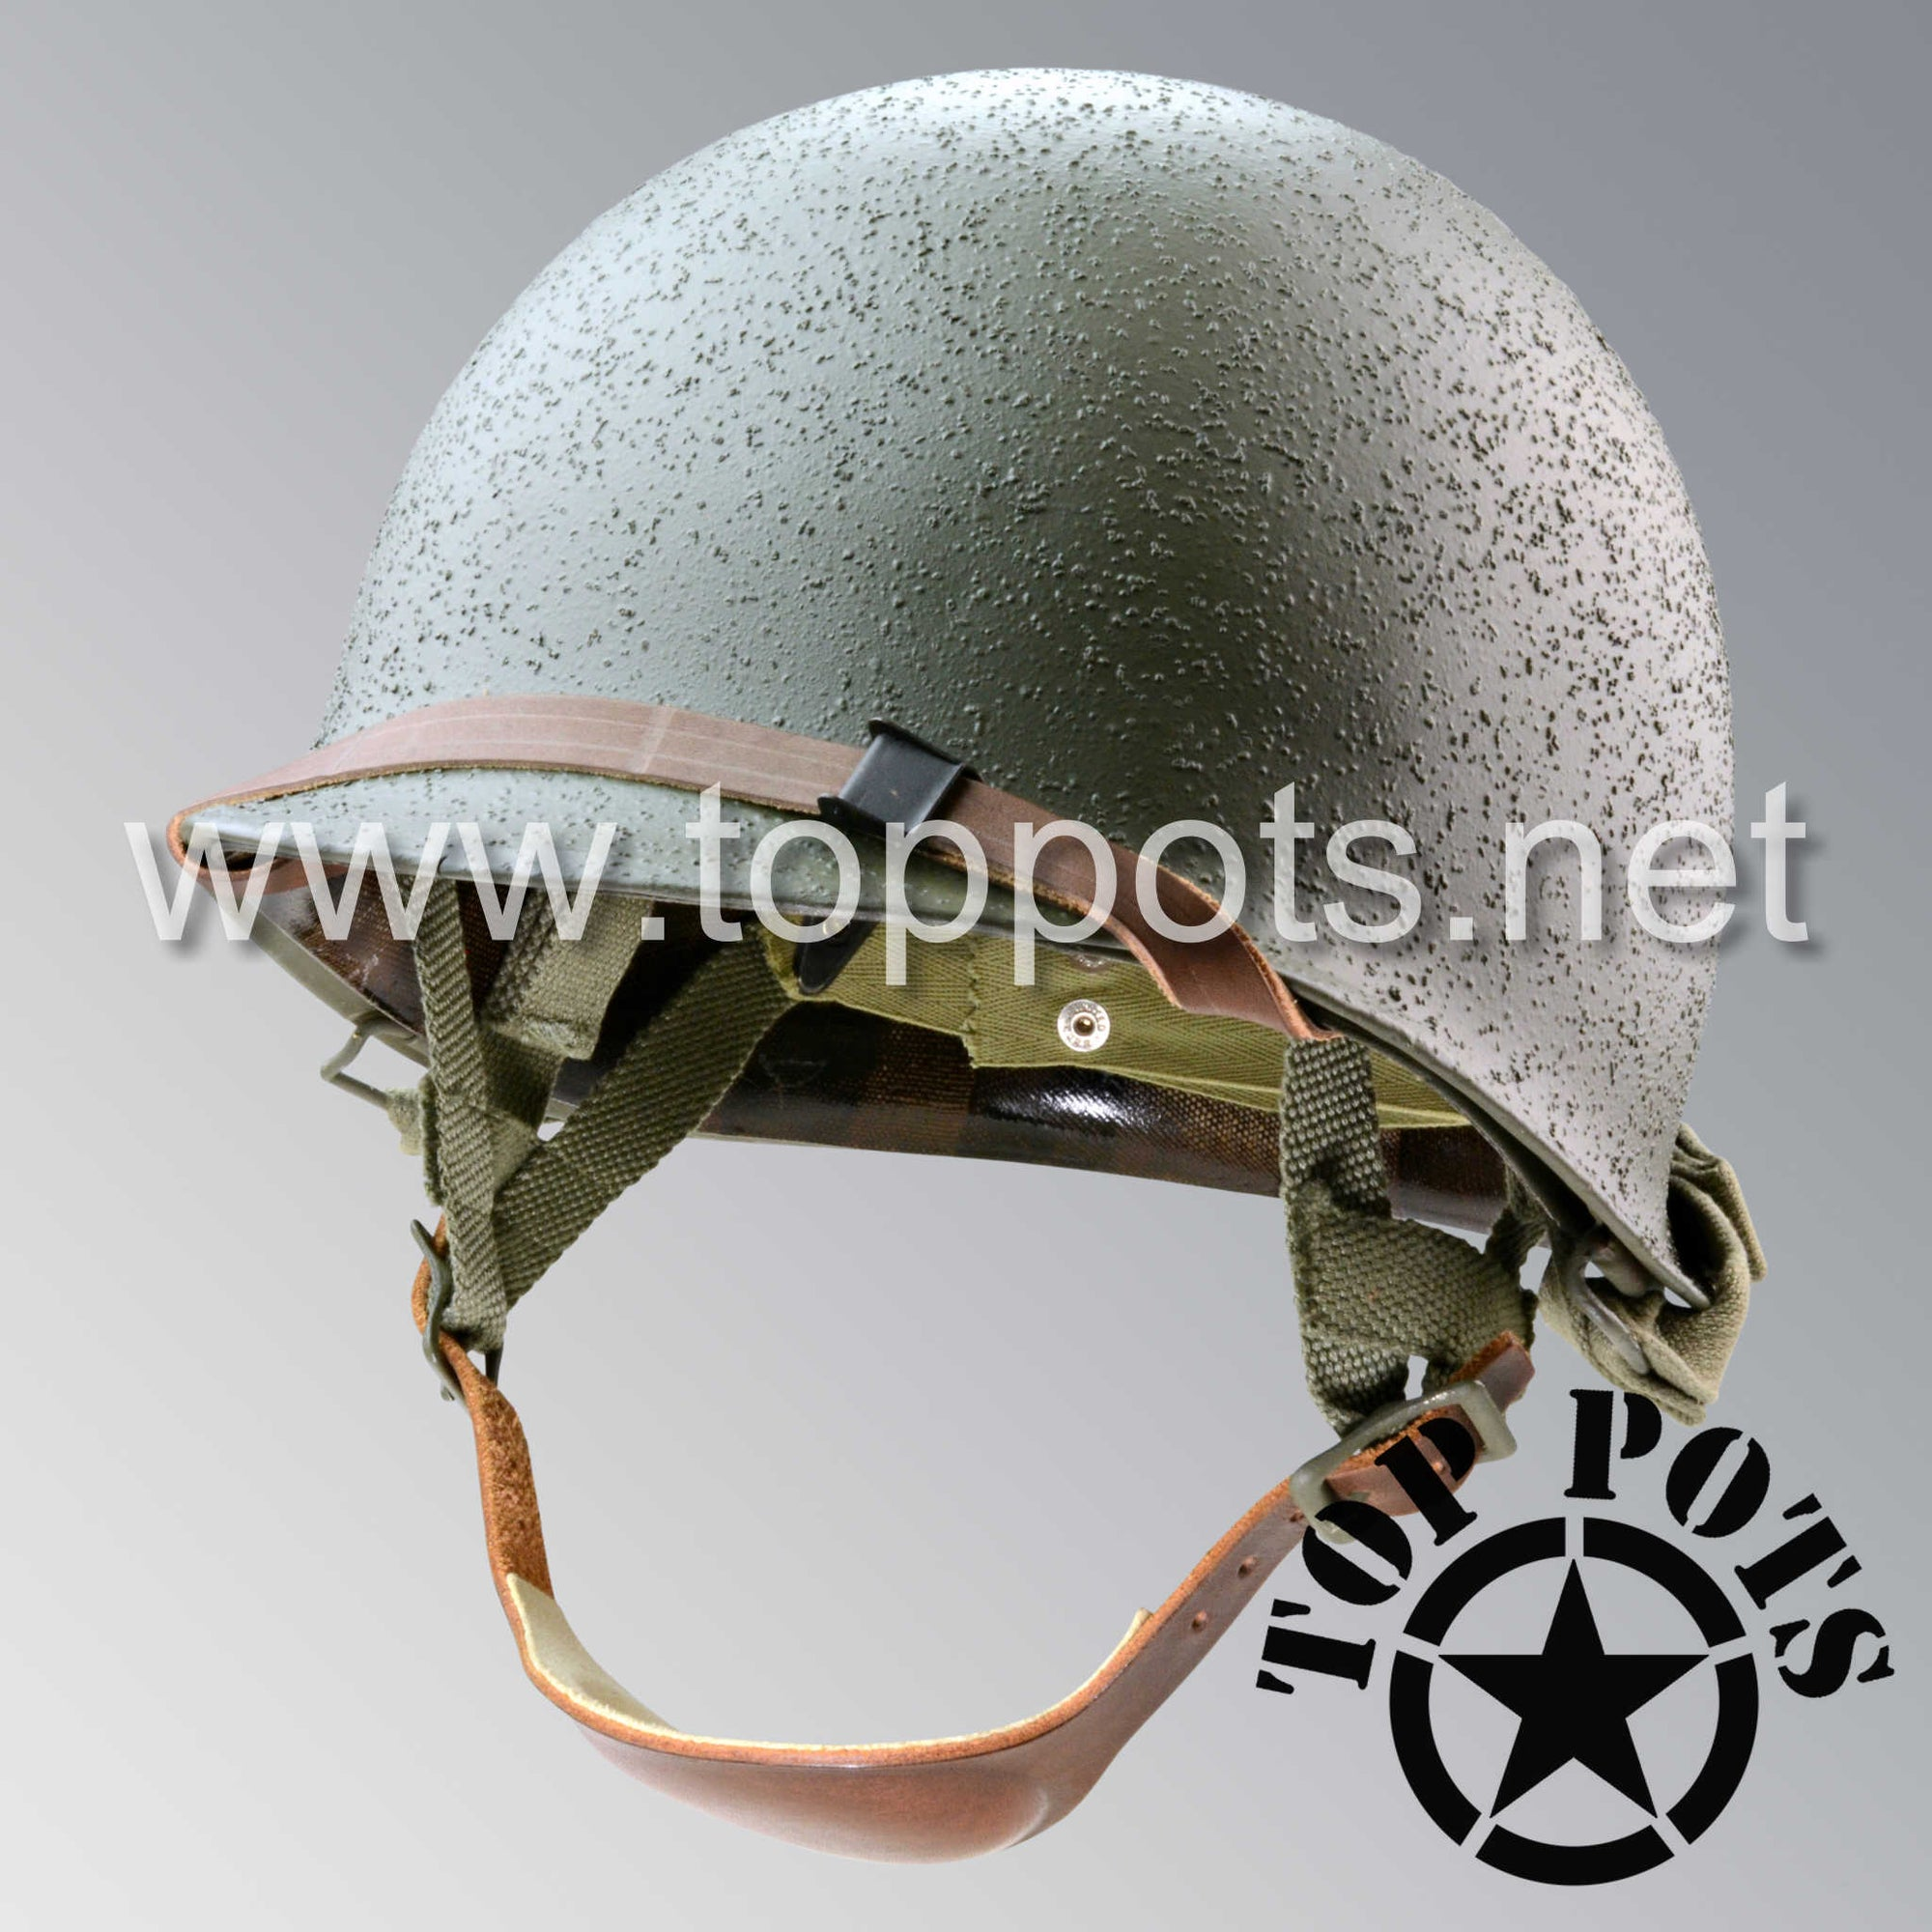 Image 1 of WWII US Army Restored Original M1C Paratrooper Airborne Helmet Swivel Bale Shell and Liner with Westinghouse A Straps